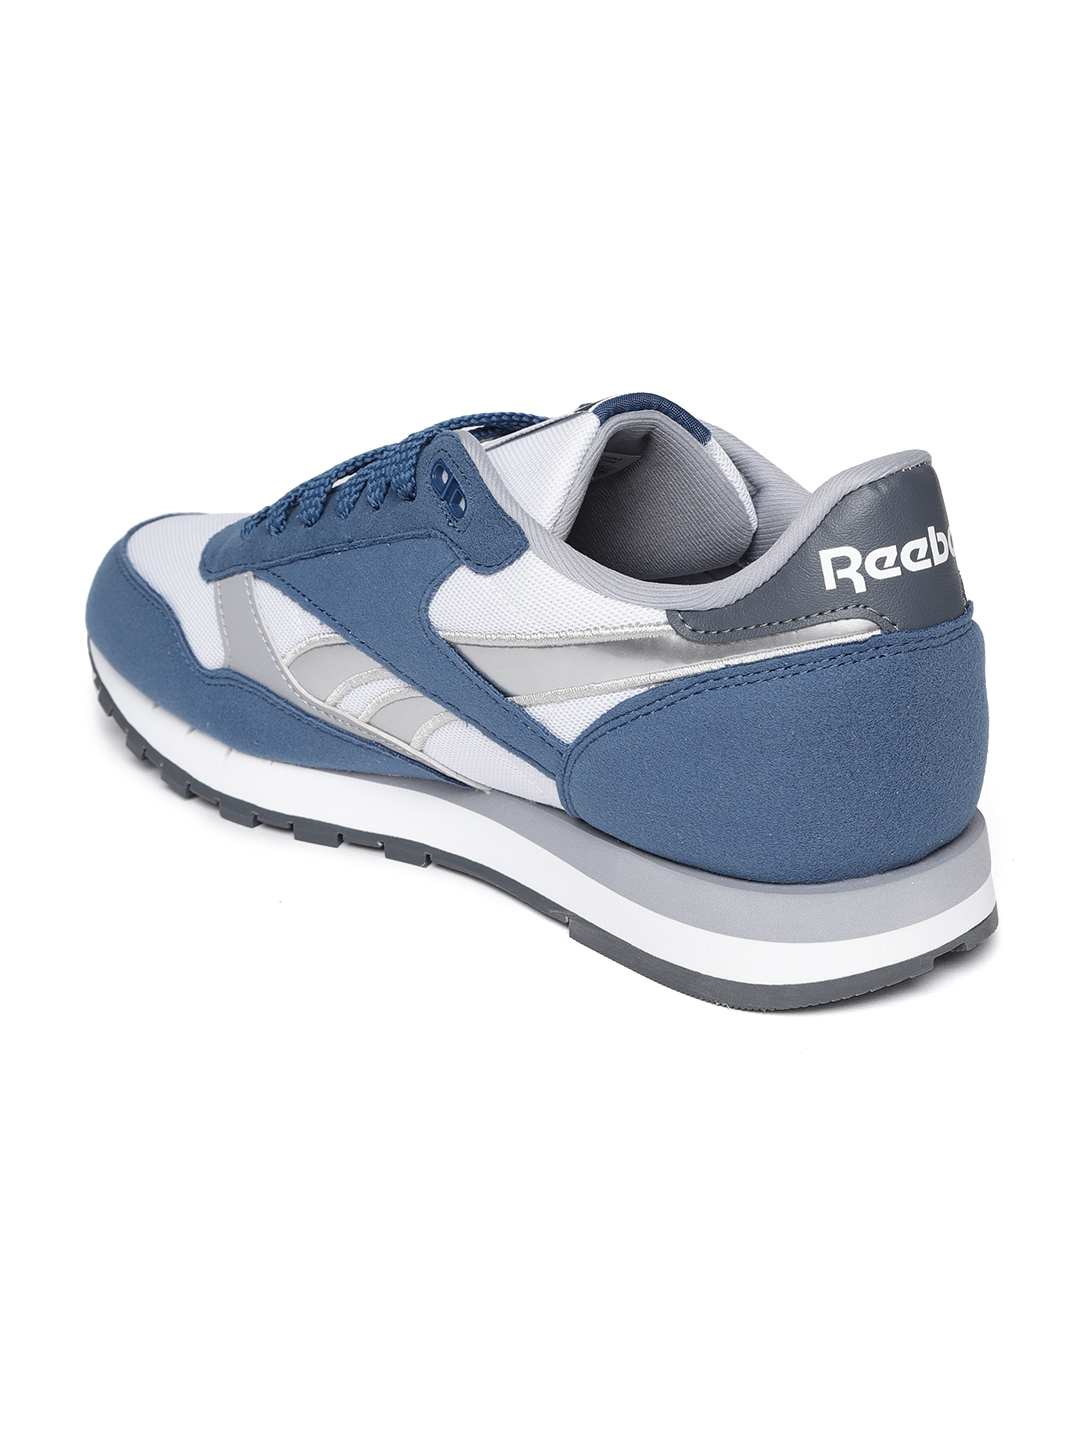 451154a36b501 Reebok Classic Men Teal Blue   White CL Leather RSP Colourblocked Sneakers